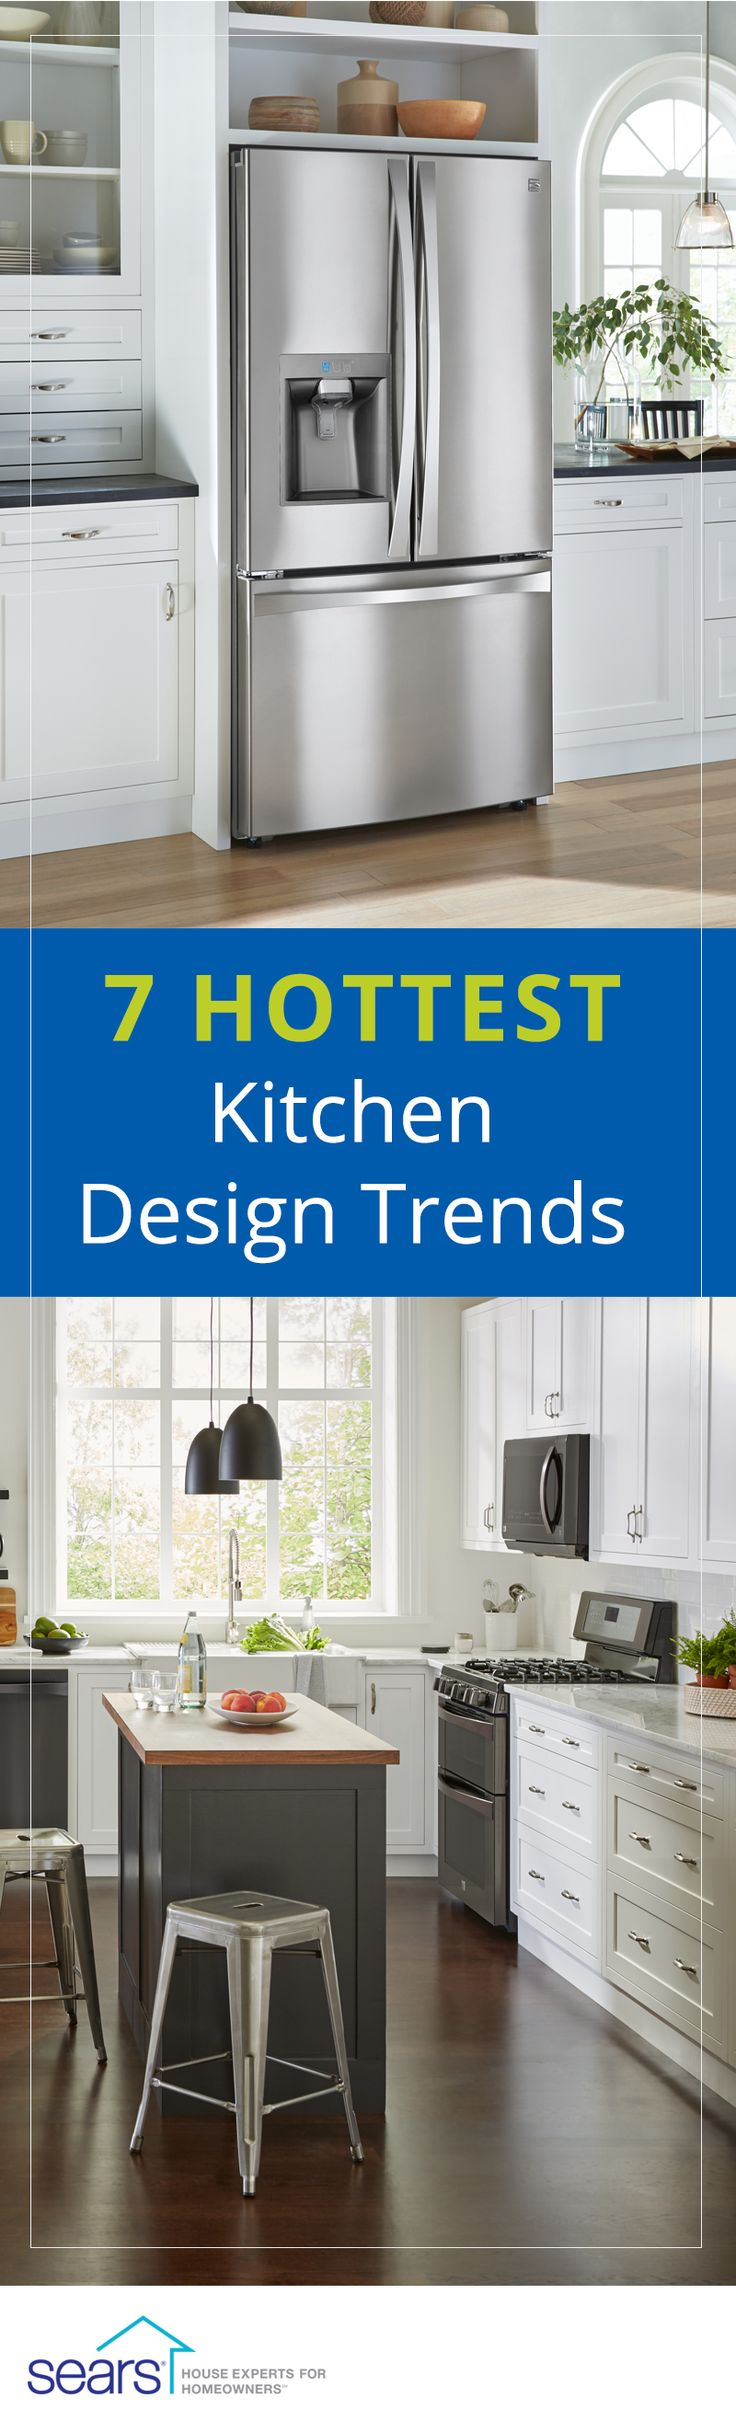 223 best images about the kitchen on pinterest wall for Kitchen design trends